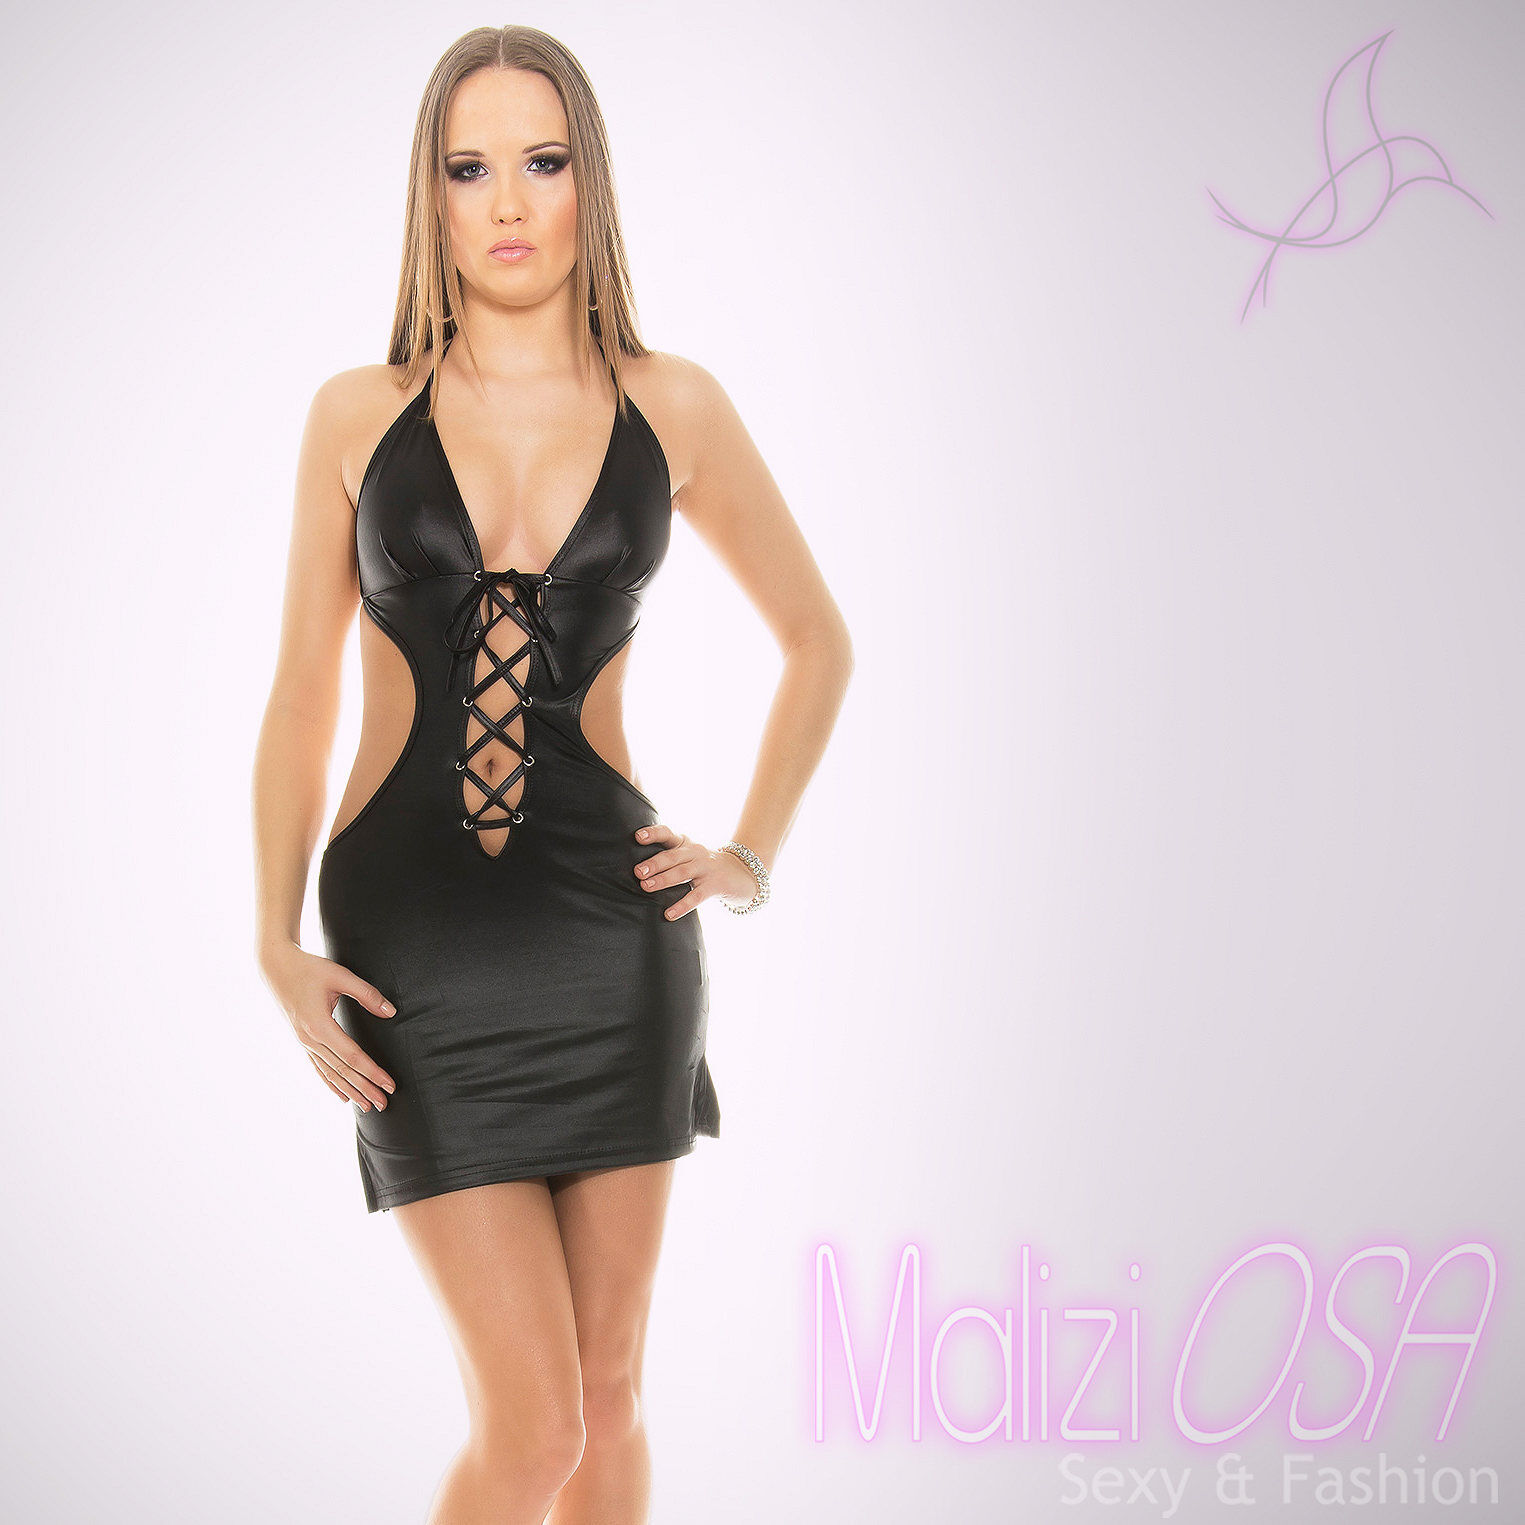 premium selection c47fc 3902d Miniabito Vestito donna schiena nuda Wetlook Discoteca Party ...